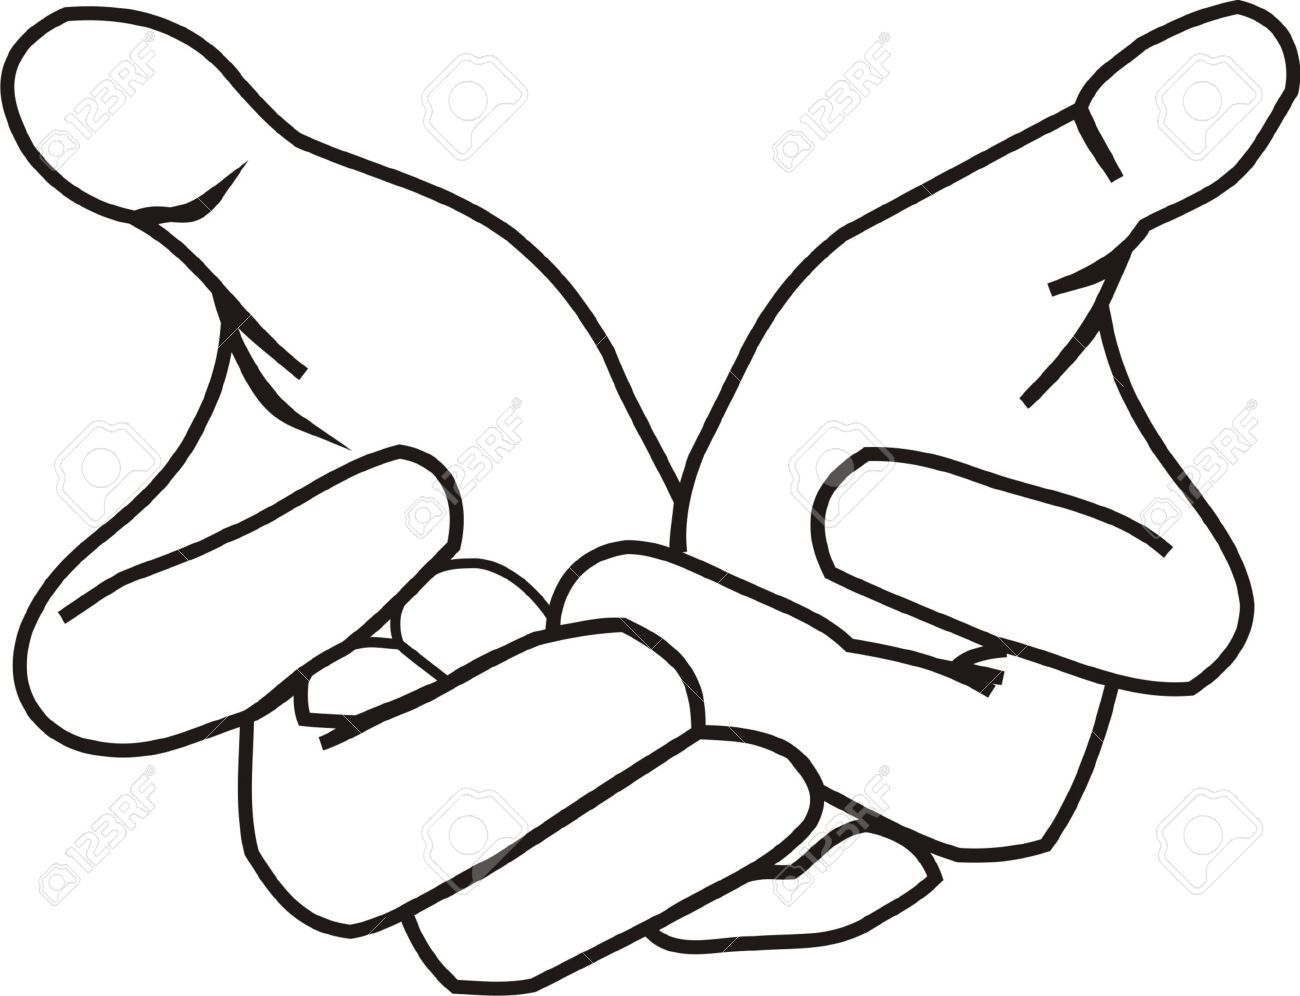 Image result for outstretched hand drawing in 2019.